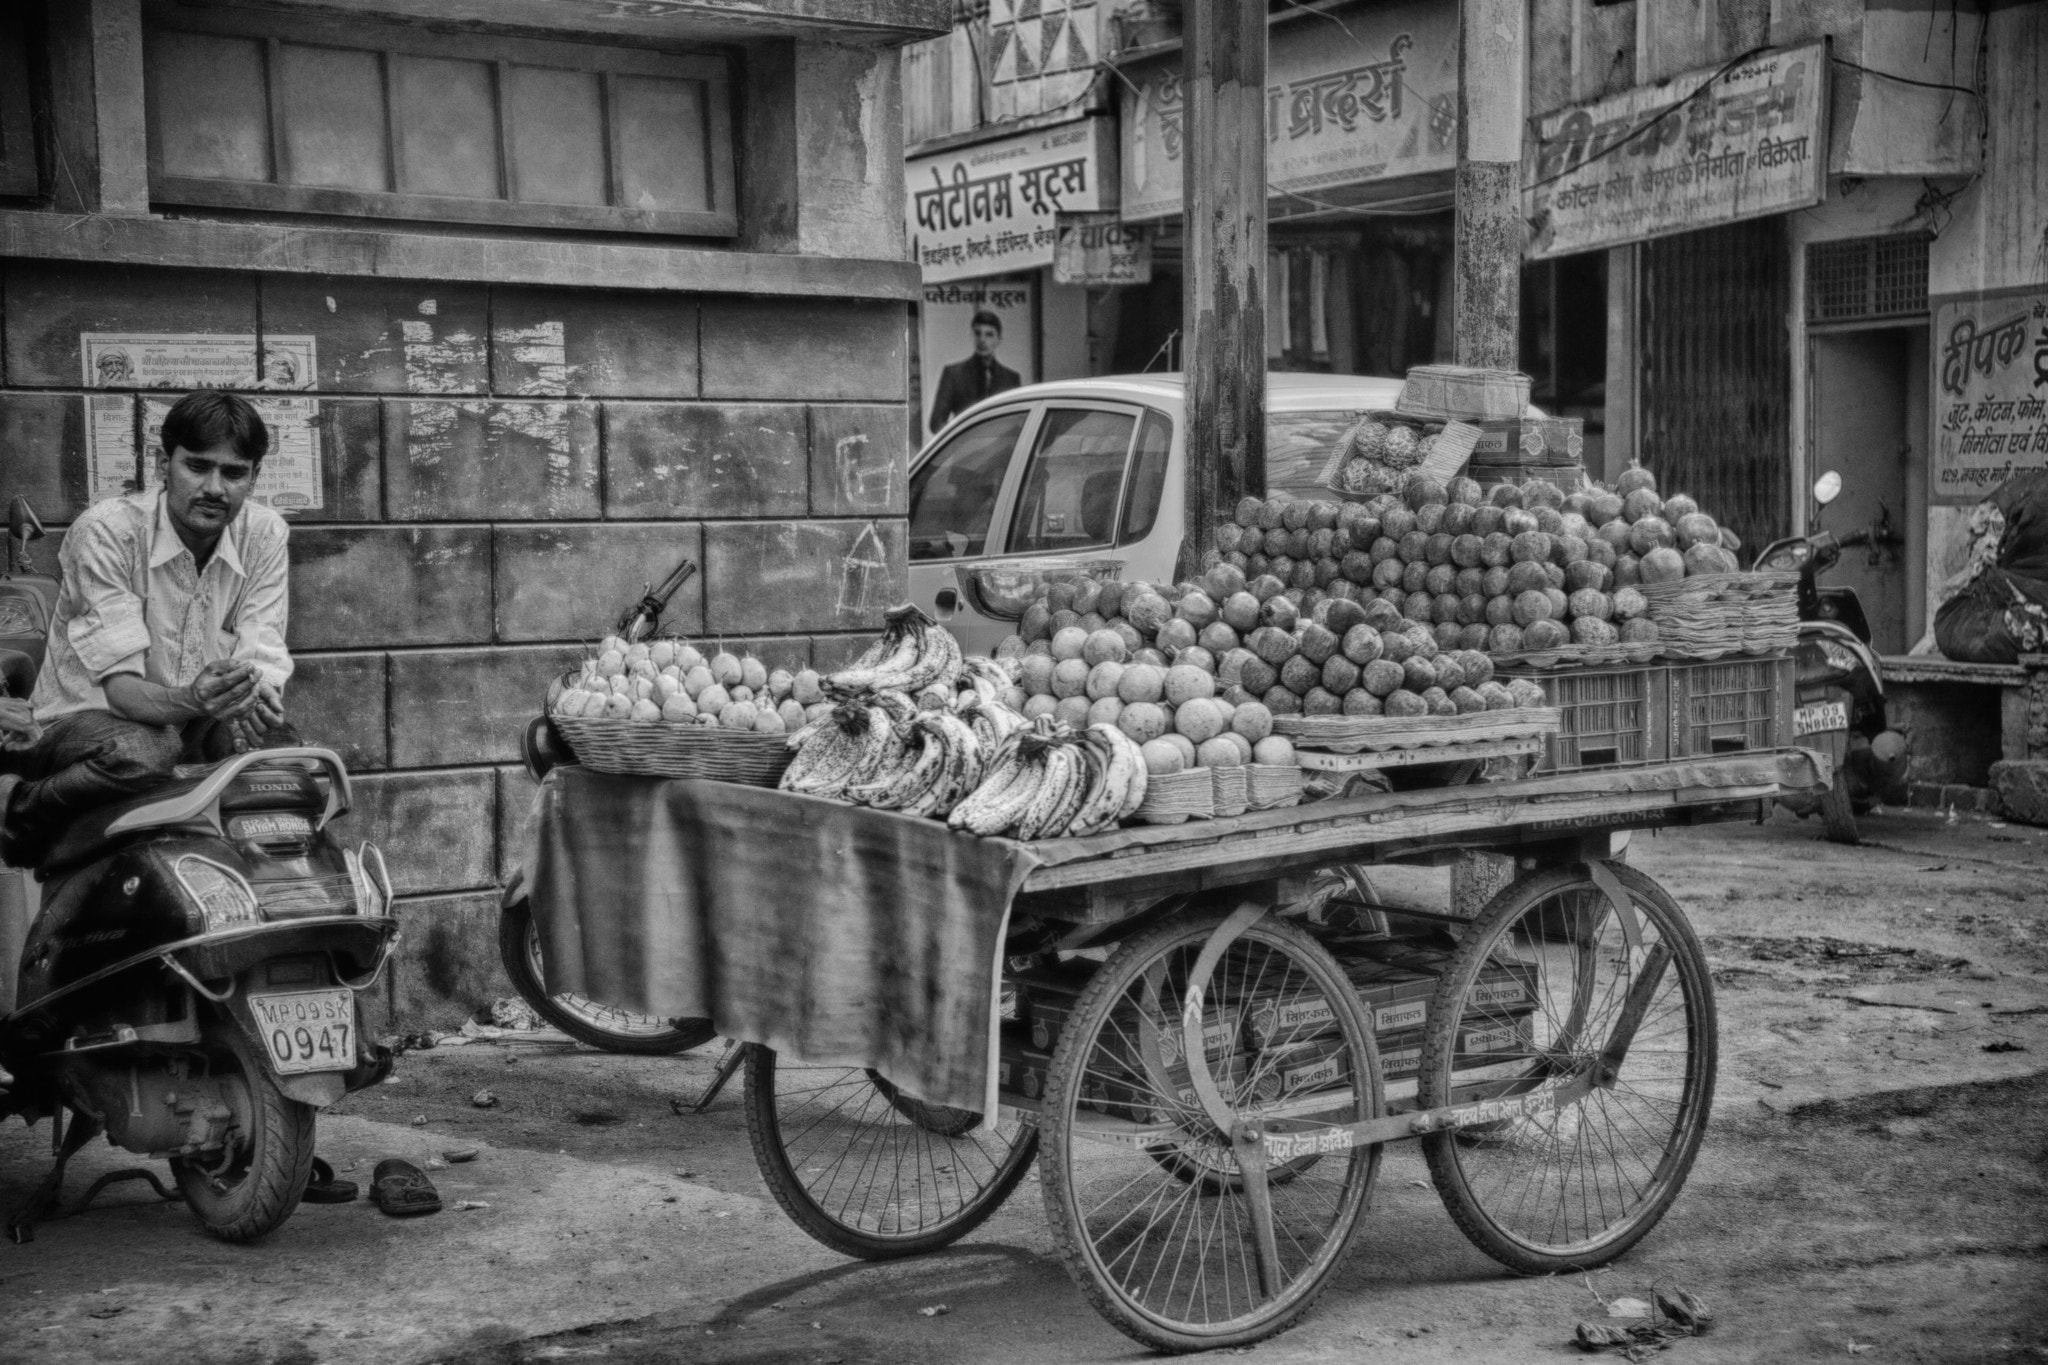 Photograph Fruit (b&w) by John Hoey on 500px